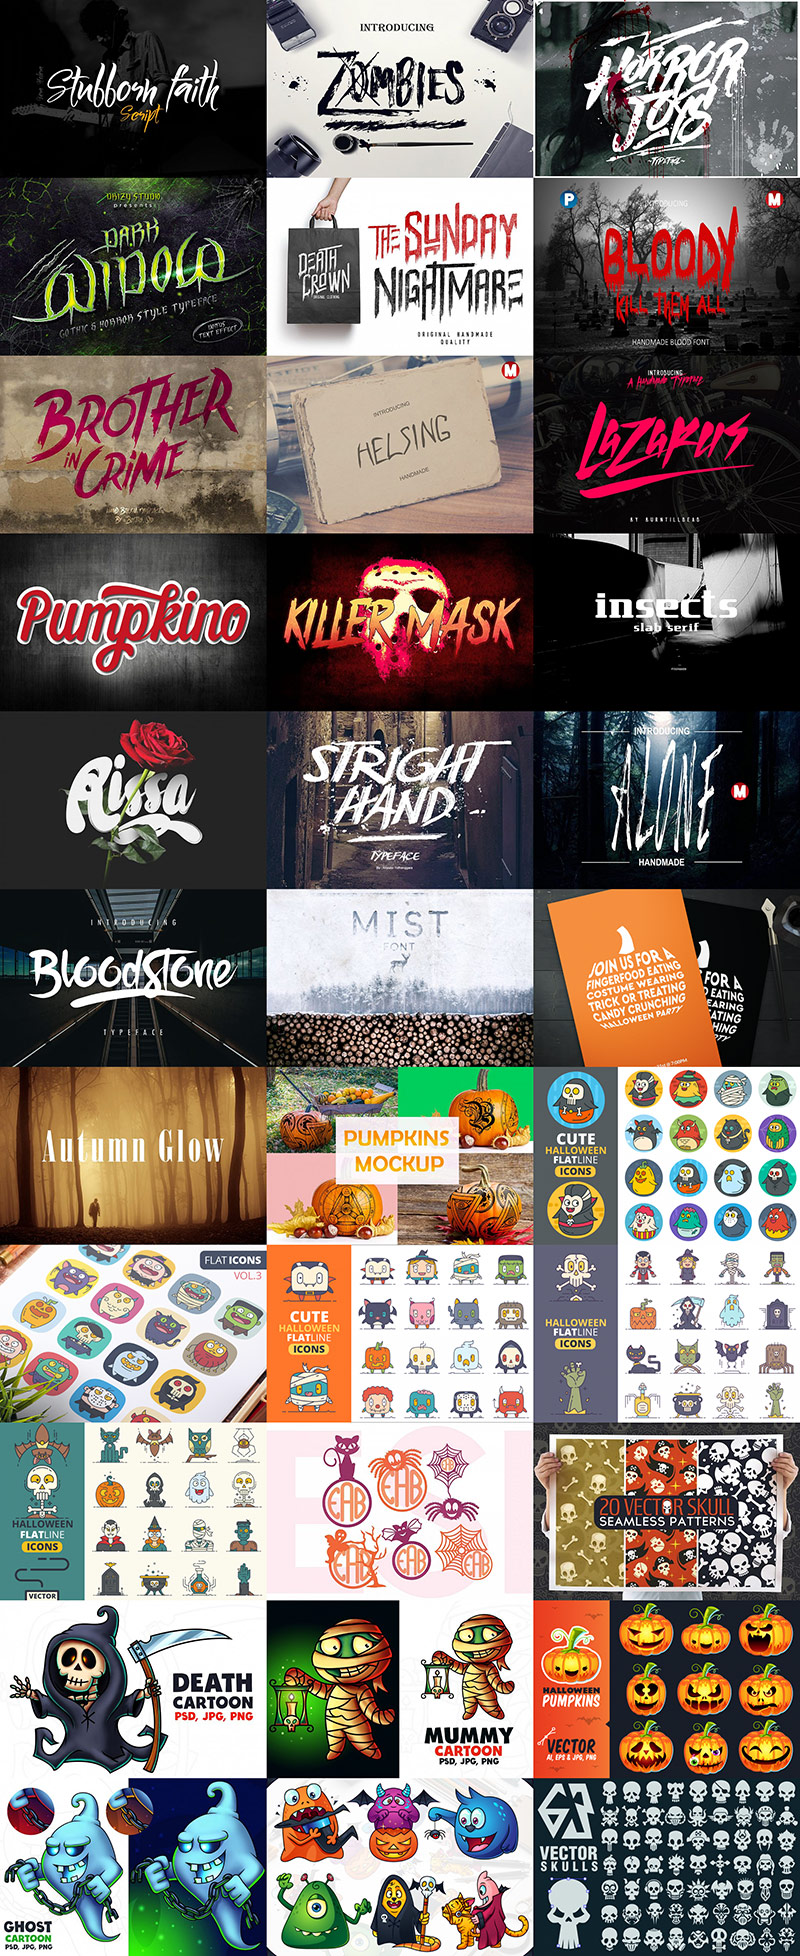 The Halloween Design Bundle – It's Spooktacular!